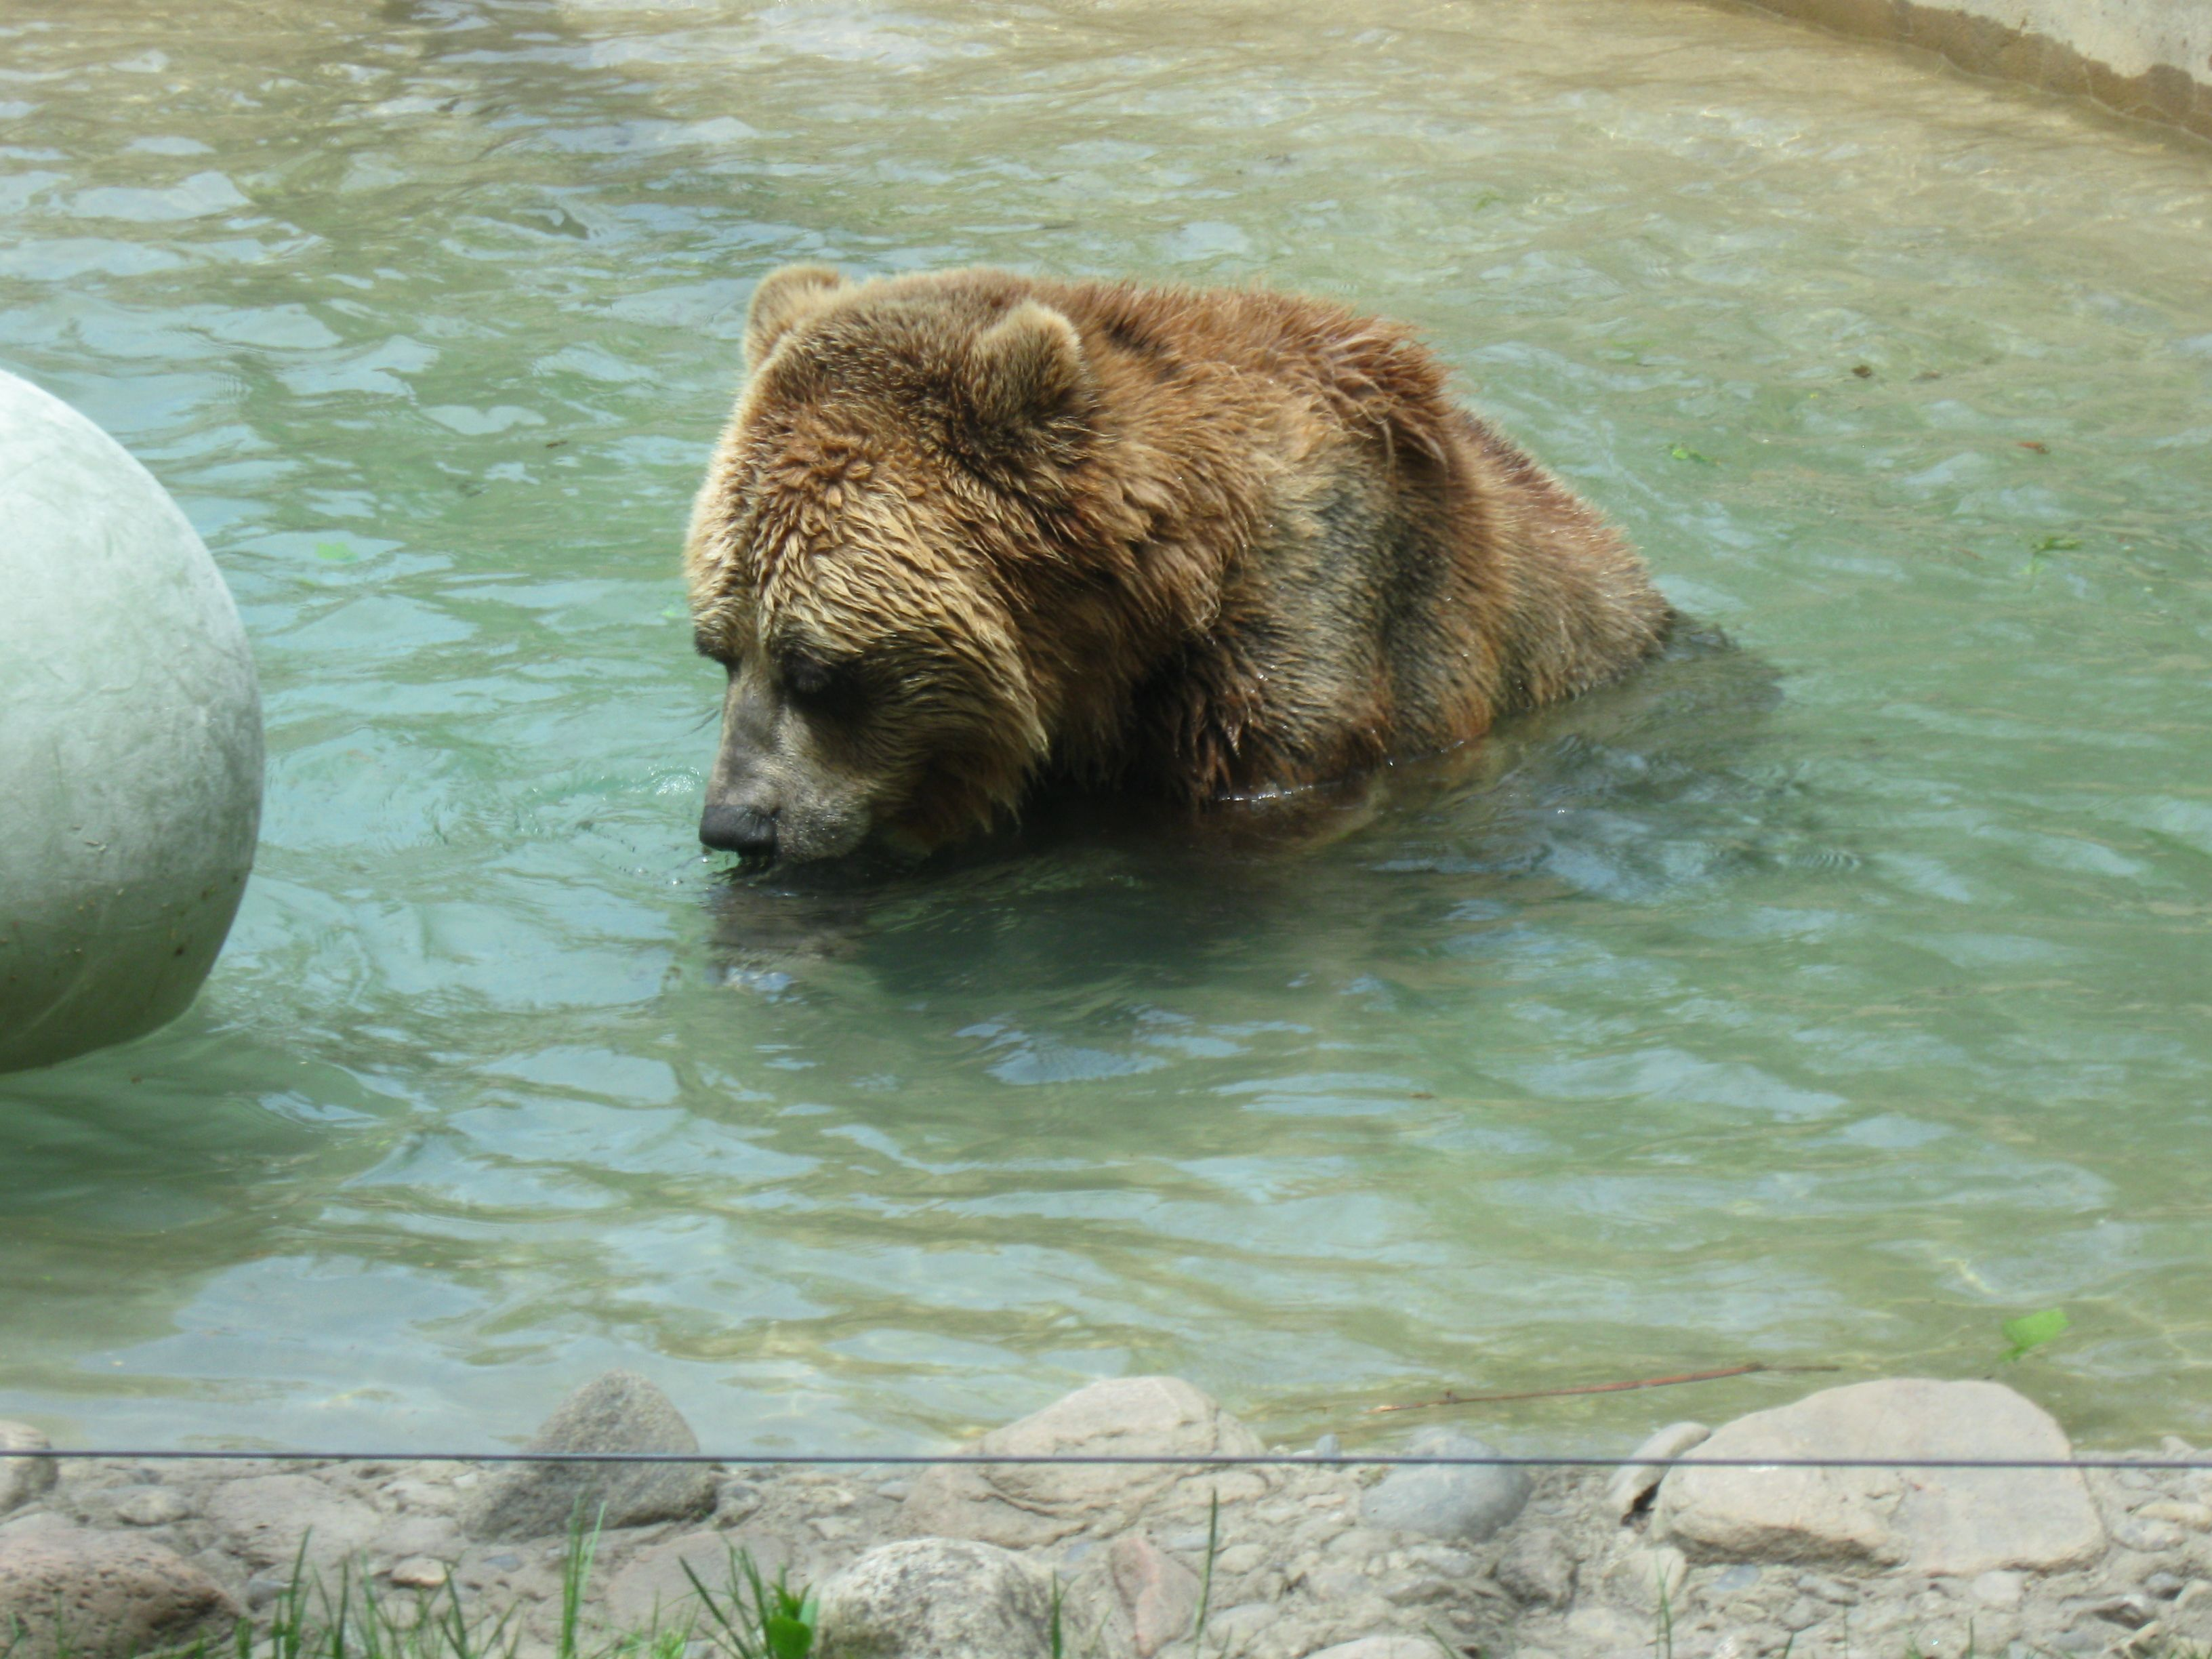 Grizzly Bear chillin' in the water - Toronto Zoo